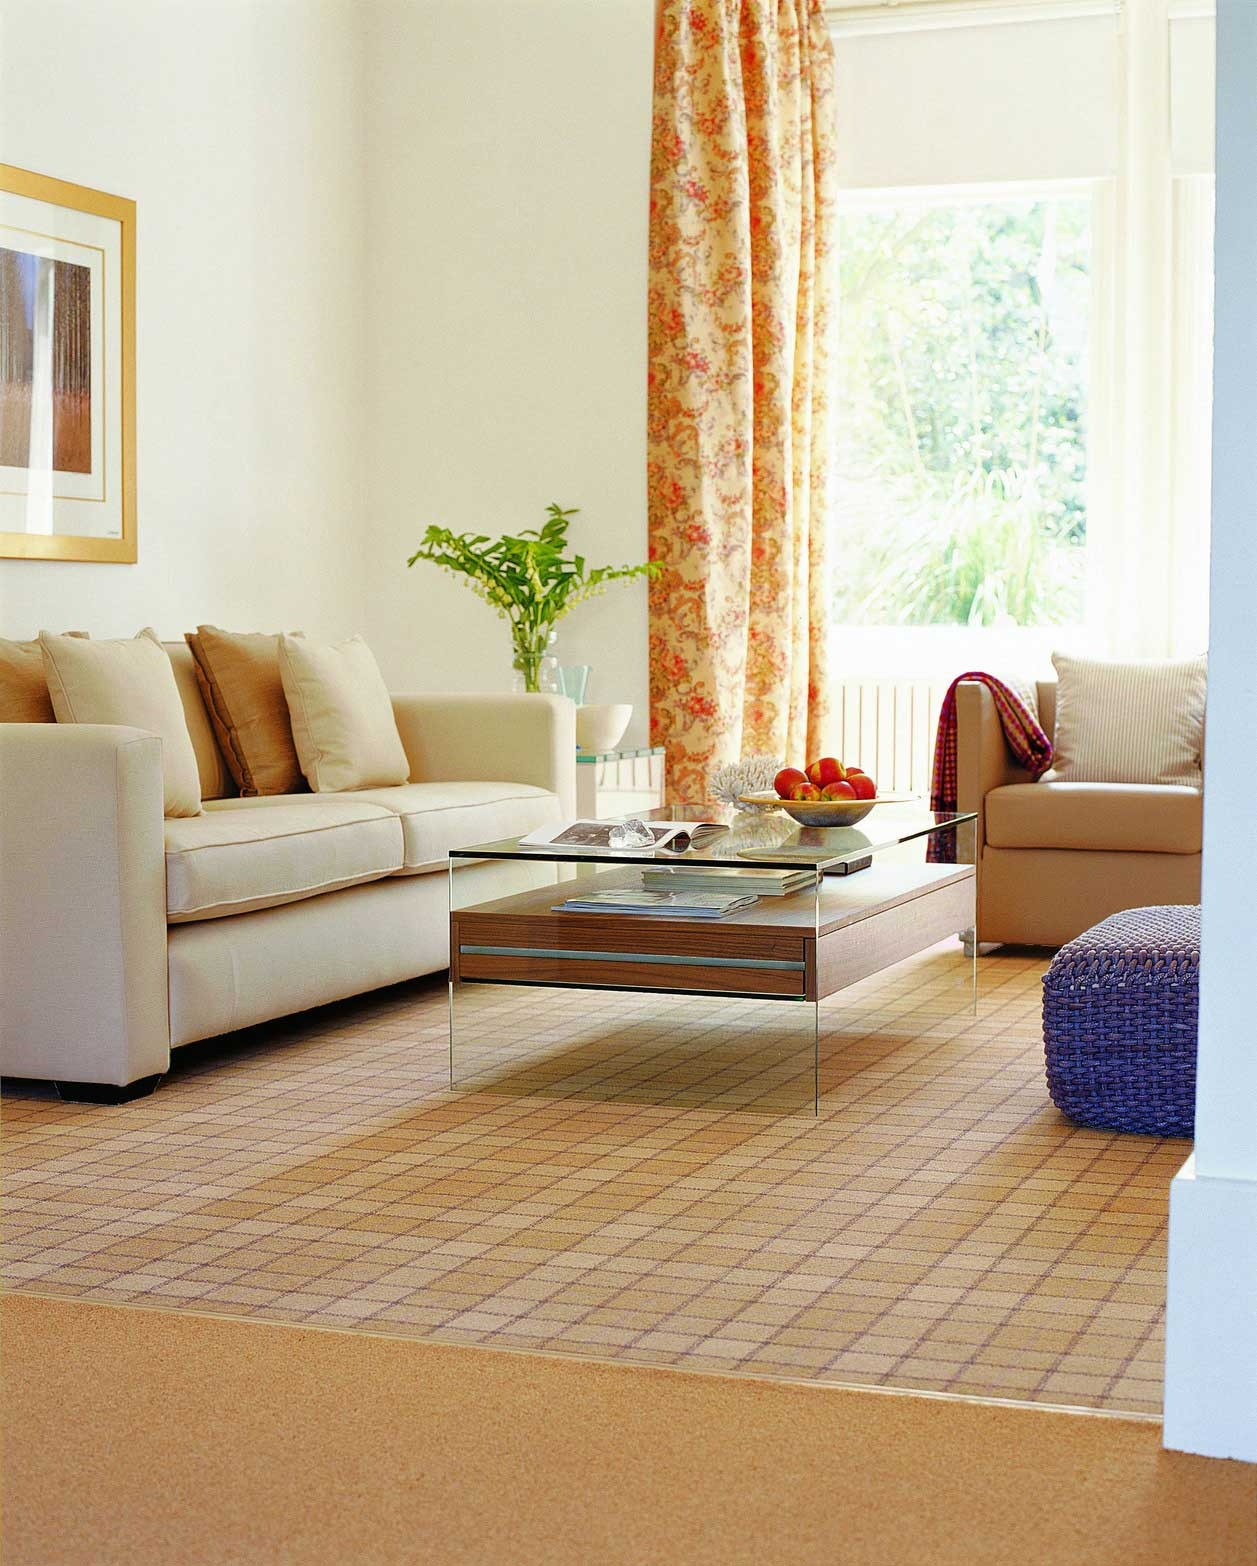 Best ideas about Living Room Carpet . Save or Pin 20 Inspirations of Living Room Carpet Decorating Ideas Now.